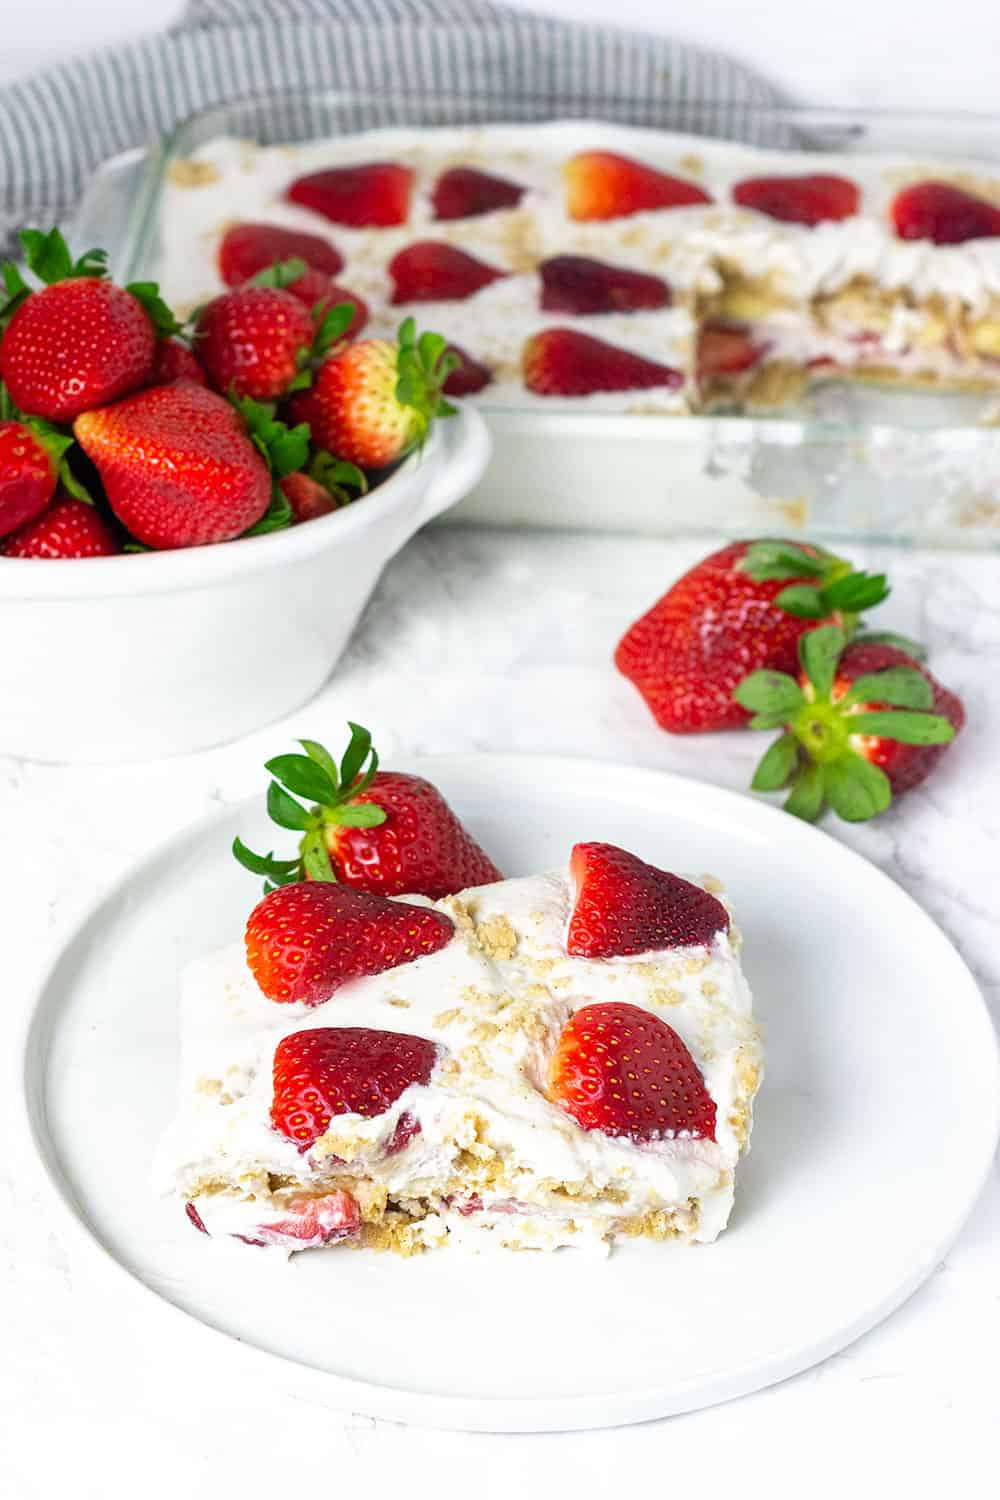 Strawberry Icebox Cake made with graham crackers, coconut whipped cream, strawberries, banana, a slice on a white plate topped with strawberies